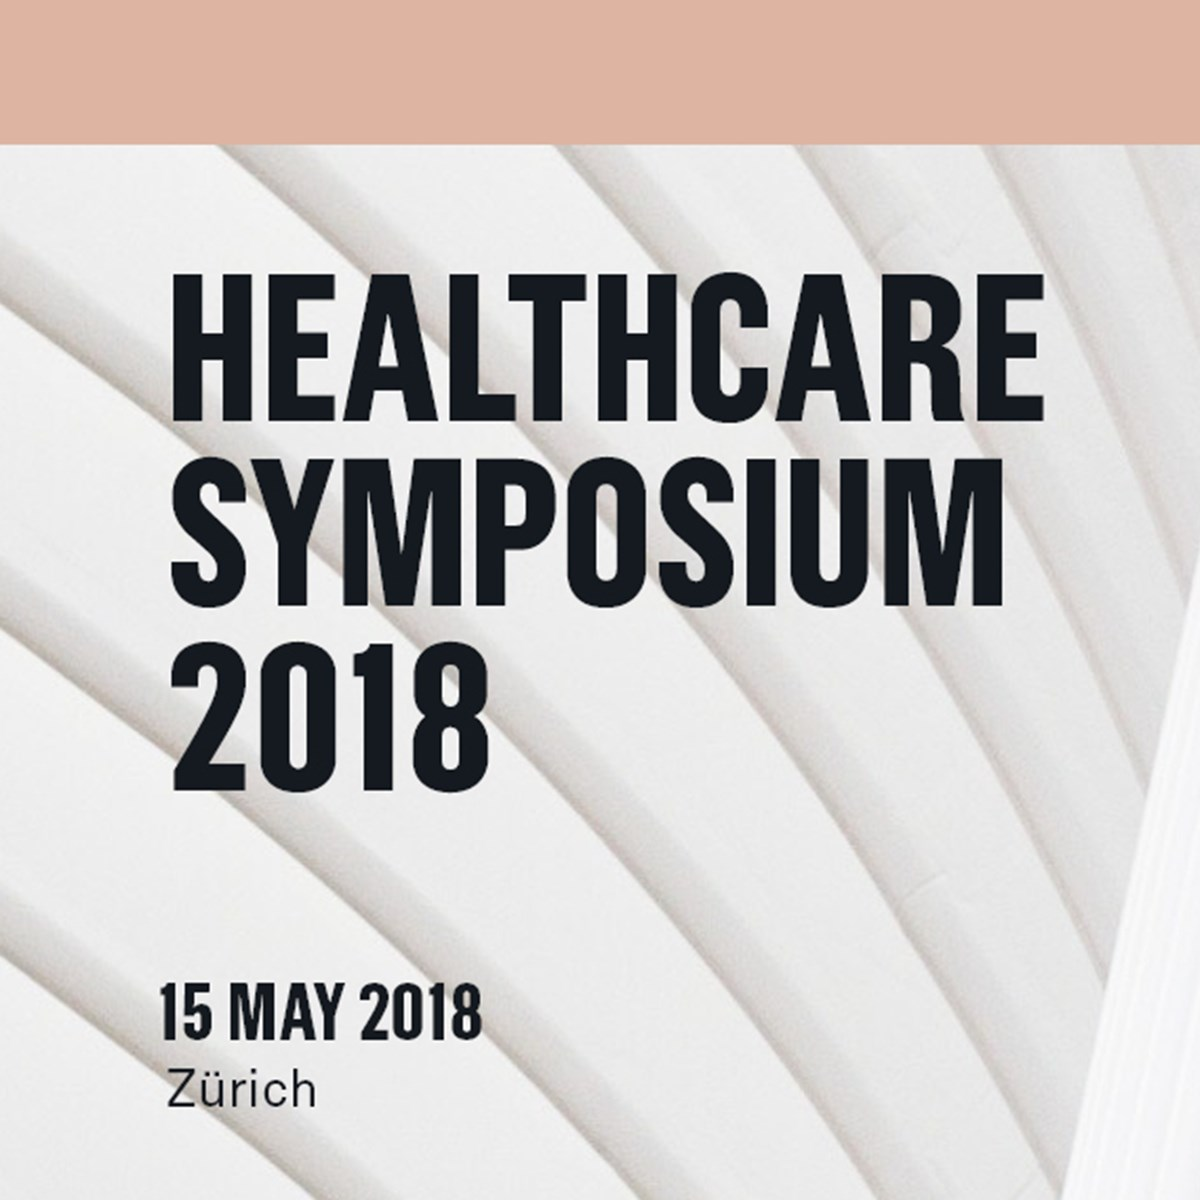 Healthcare Symposium 2018